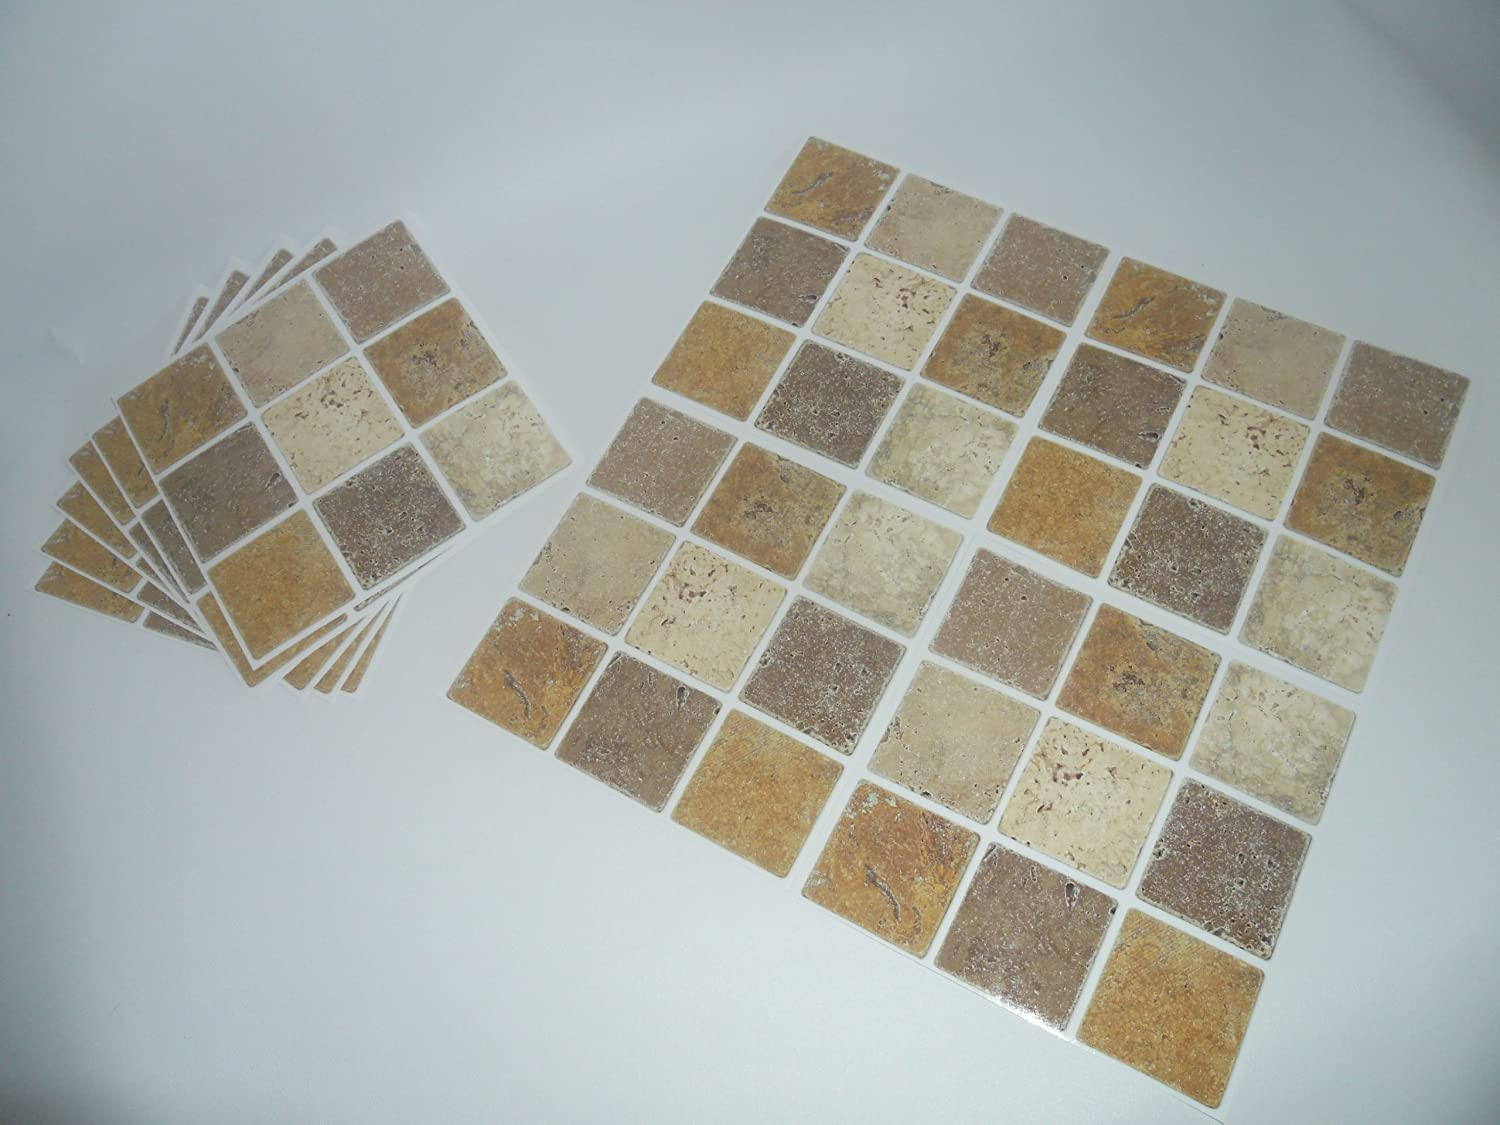 Mosaic Tile Transfers Stickers Brown Beige Stone Effect. Quickly Transform  Your Bathroom Or Kitchen Wall Tiles, Self Adhesive, Quick And Mess Free: ... Part 89